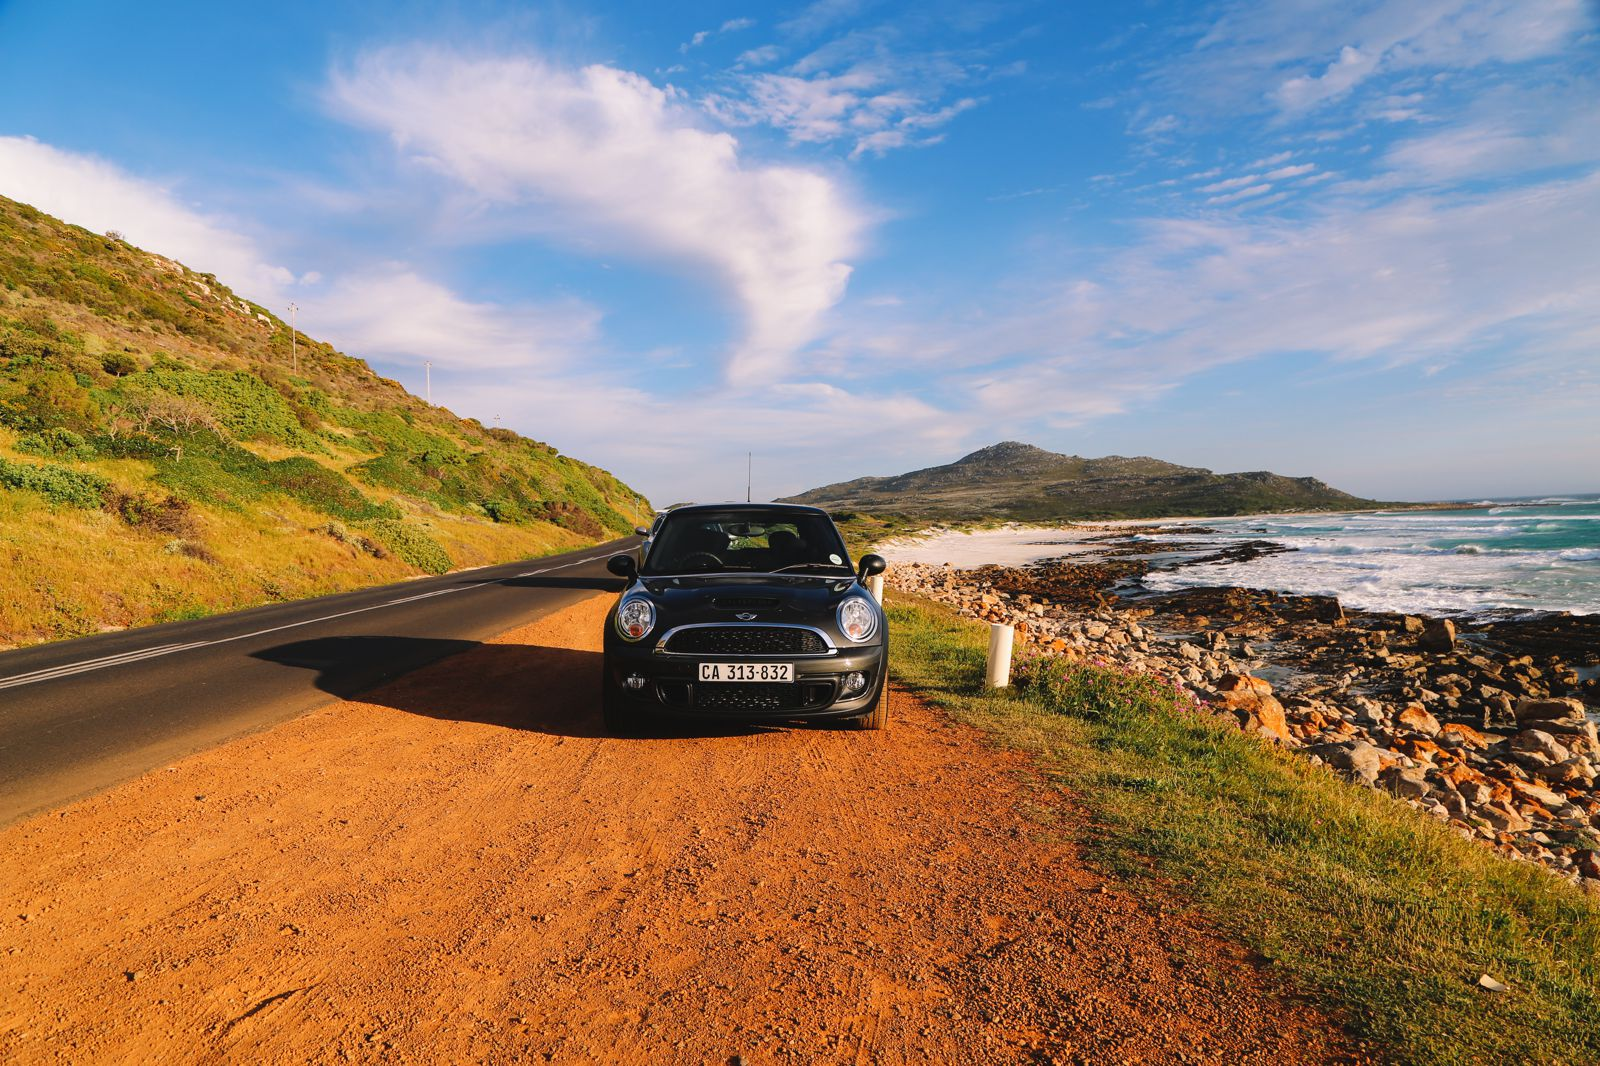 Exploring The Most Scenic Driving Route In Cape Town - The Cape Peninsula (6)